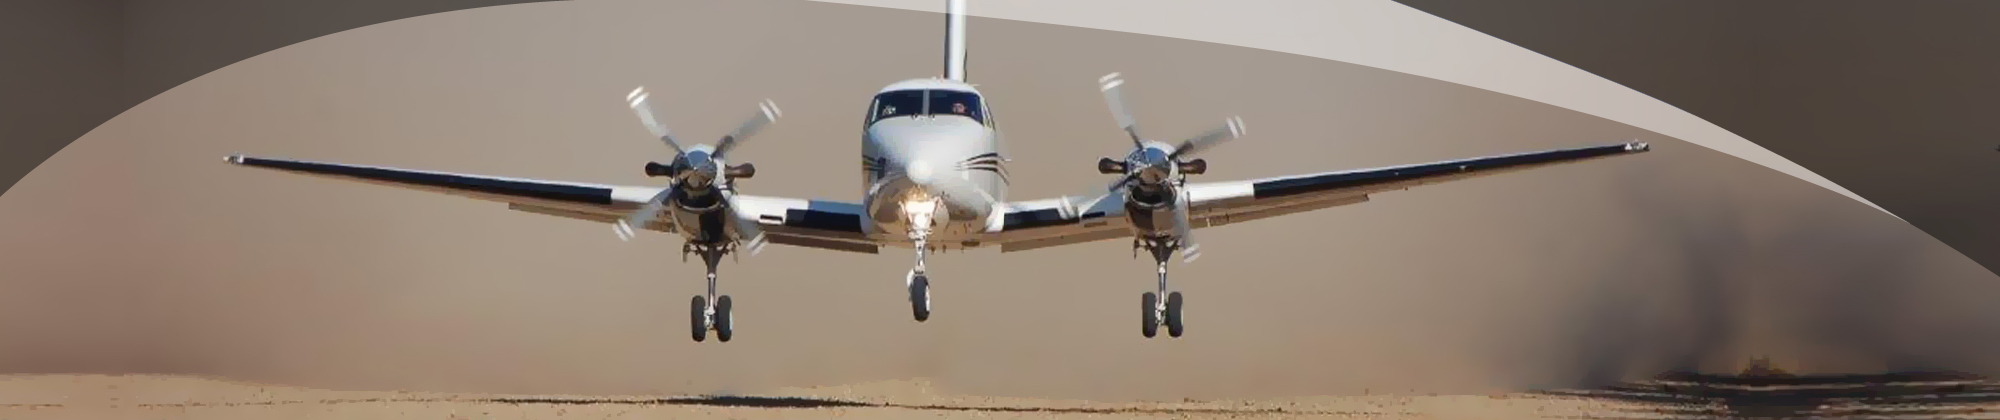 Swift Flite Turbo Prop Aircraft